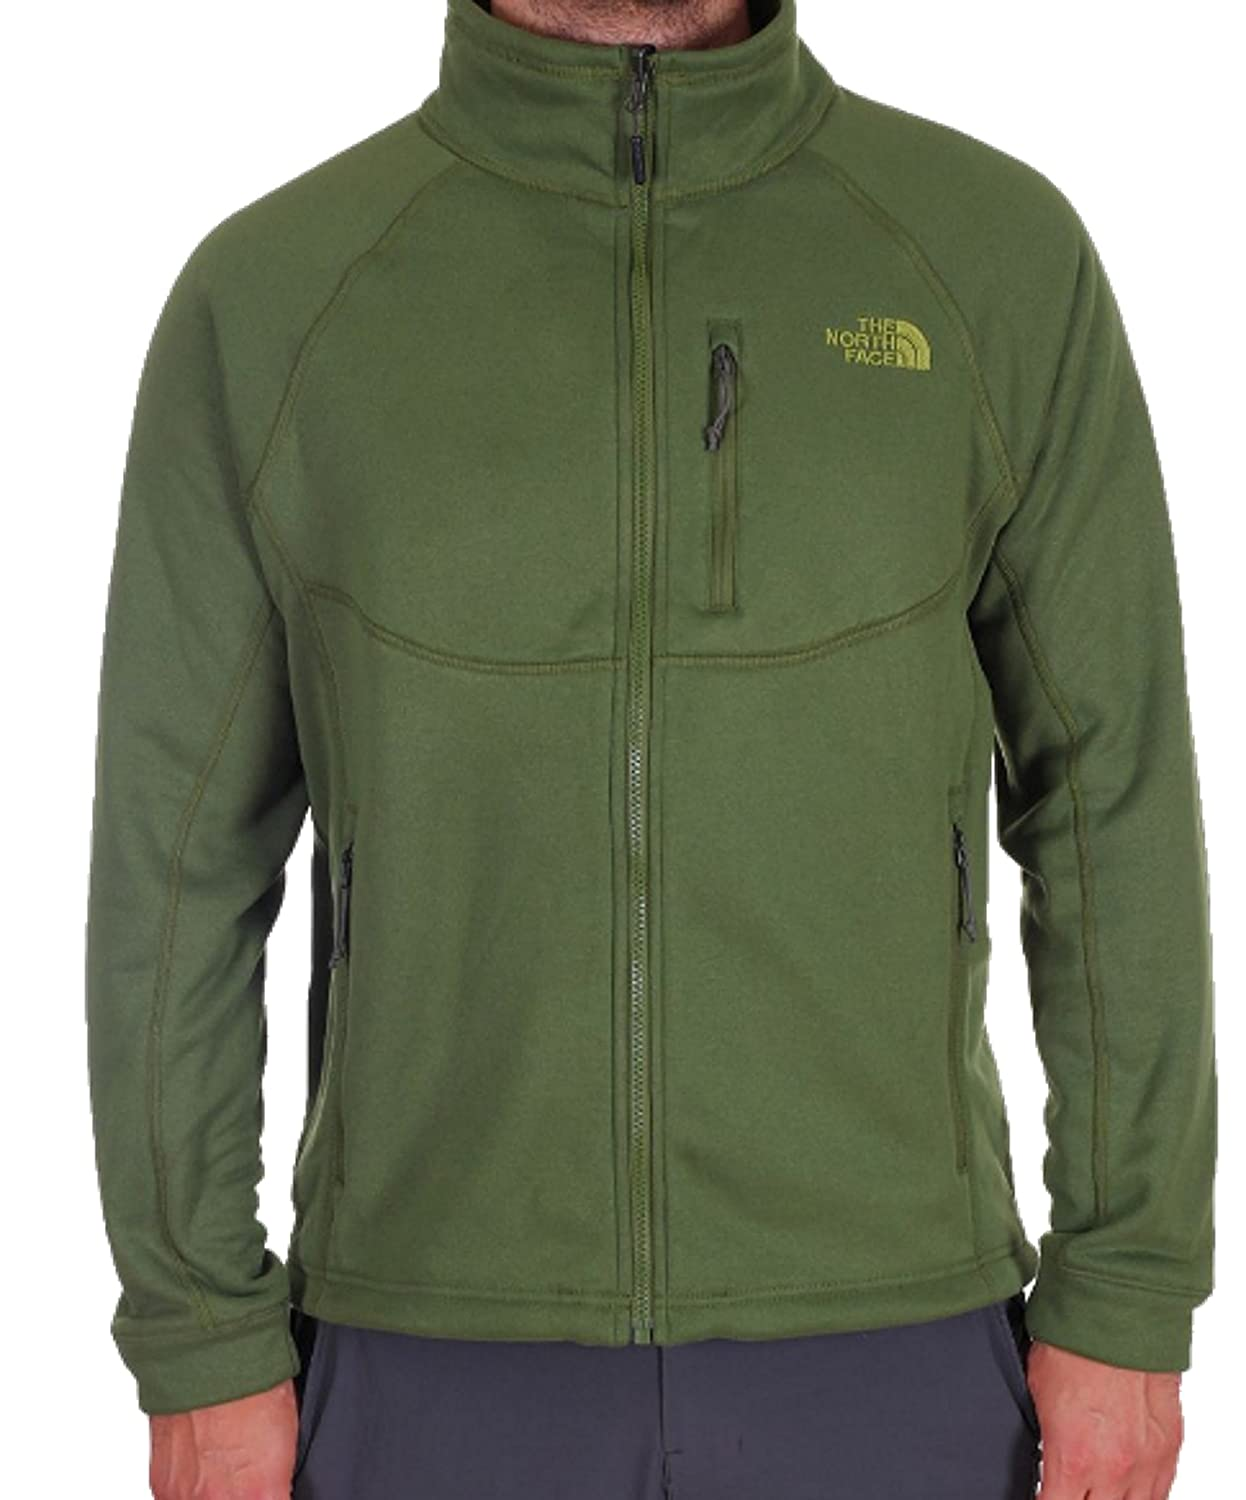 e77d95cd5 THE NORTH FACE M Timber Full Zip Fleece Jacket - Green, Size L ...